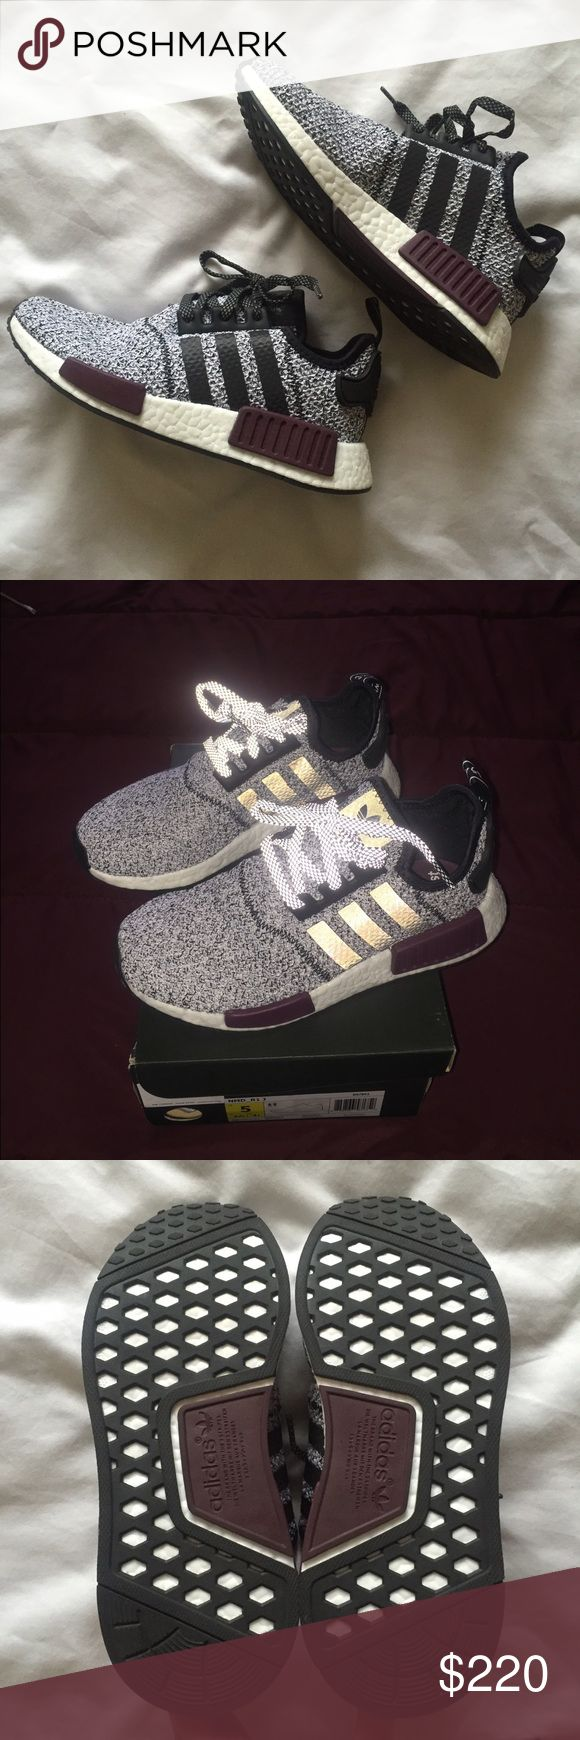 adidas NMD R1 Glitch Camo Midnight Grey/White Midnight Grey 5.5